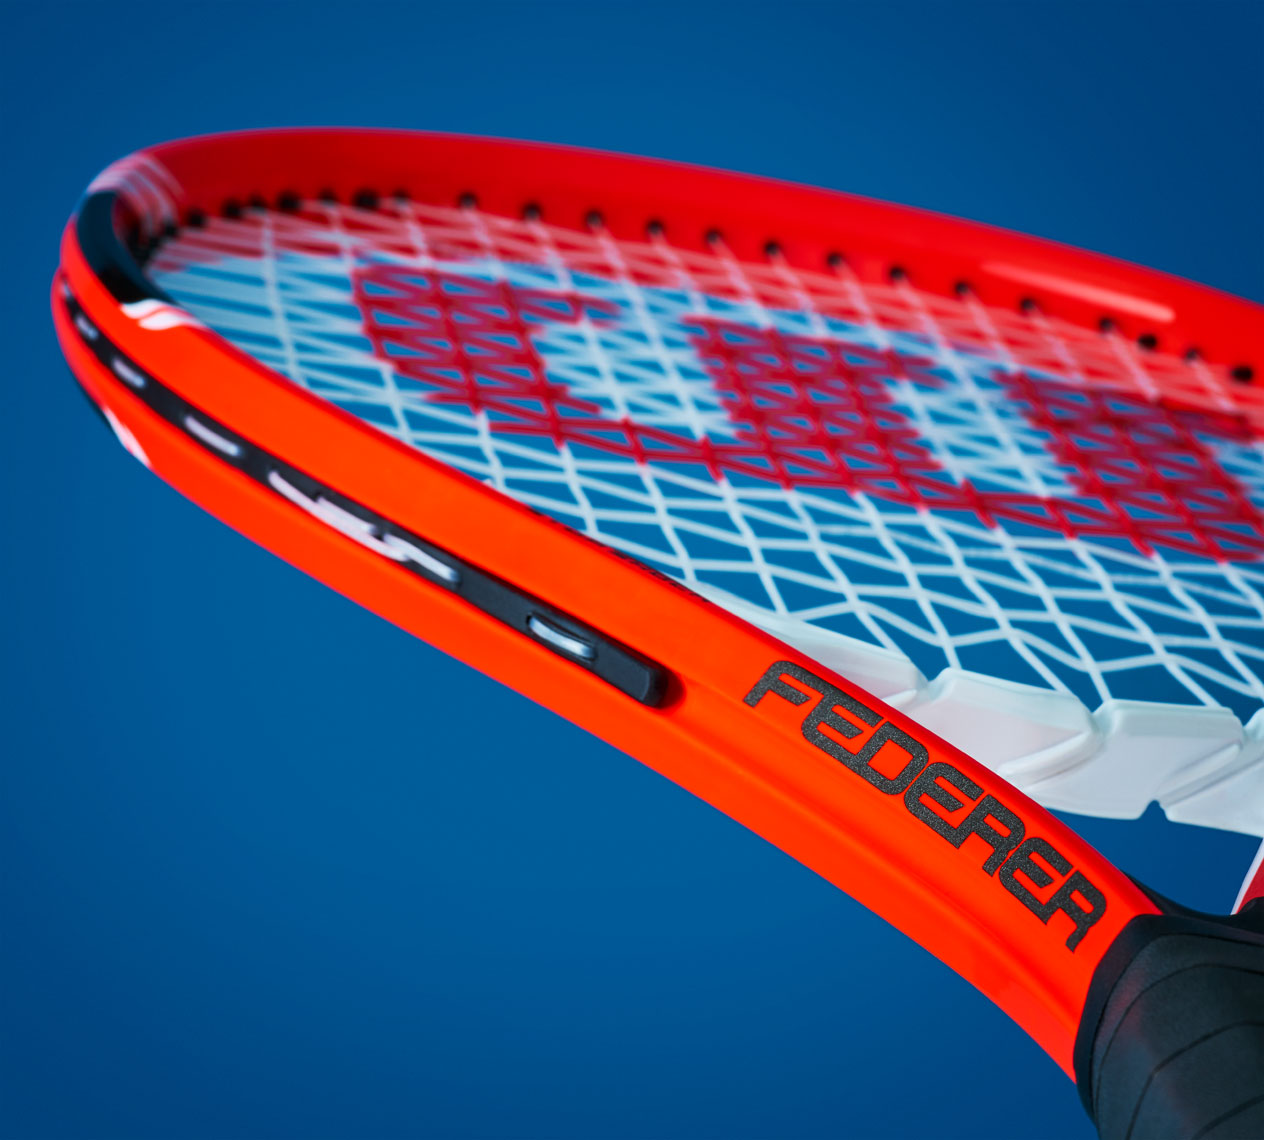 Product Photography Gear Wilson Federer Adult Tennis Rackets Red on Blue Chicago Denver St. Louis